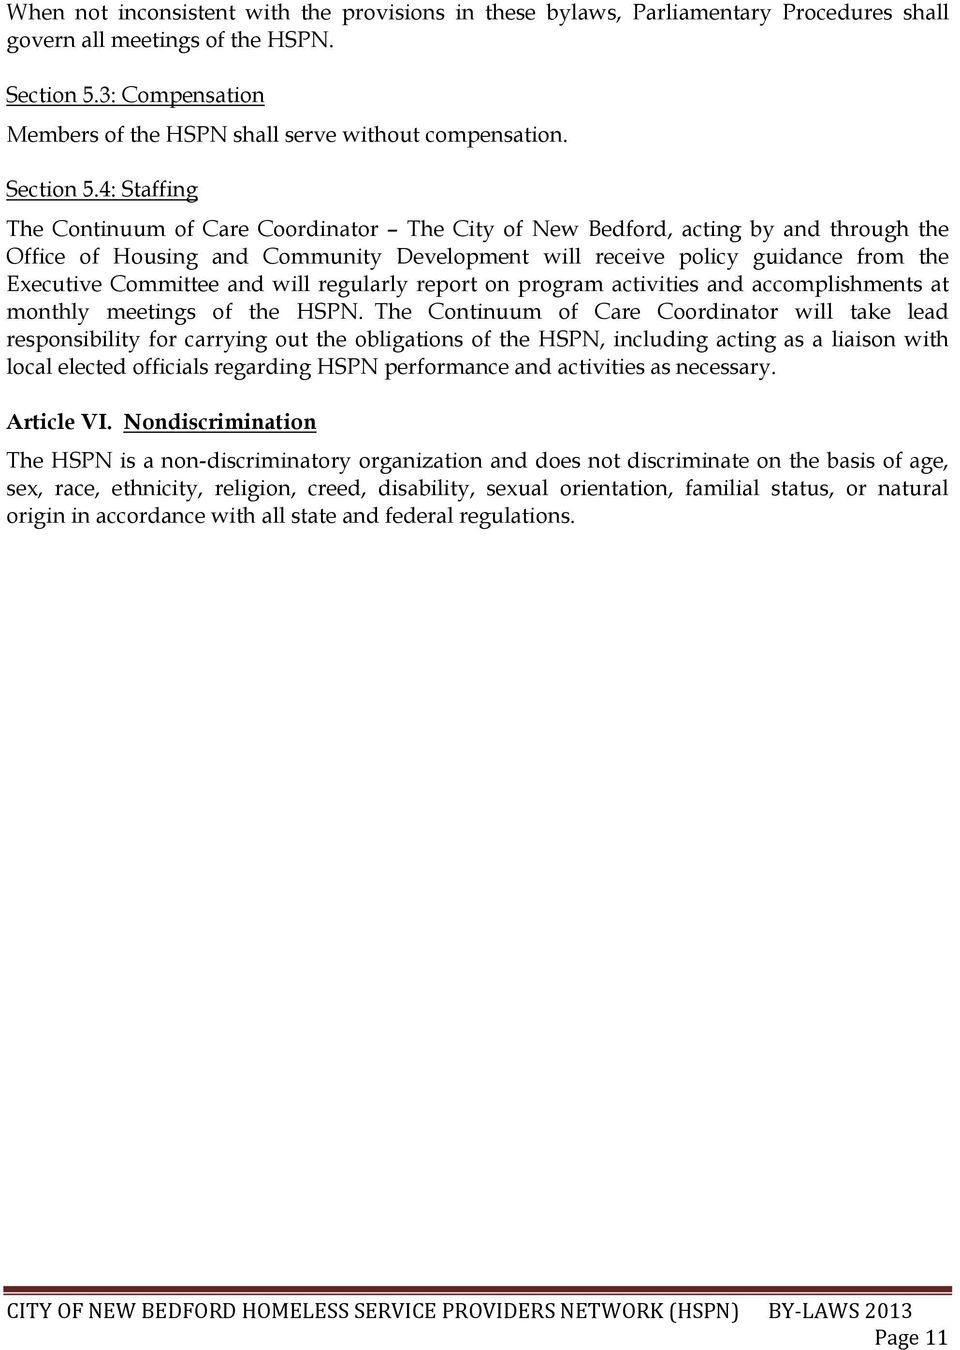 4: Staffing The Continuum of Care Coordinator The City of New Bedford, acting by and through the Office of Housing and Community Development will receive policy guidance from the Executive Committee